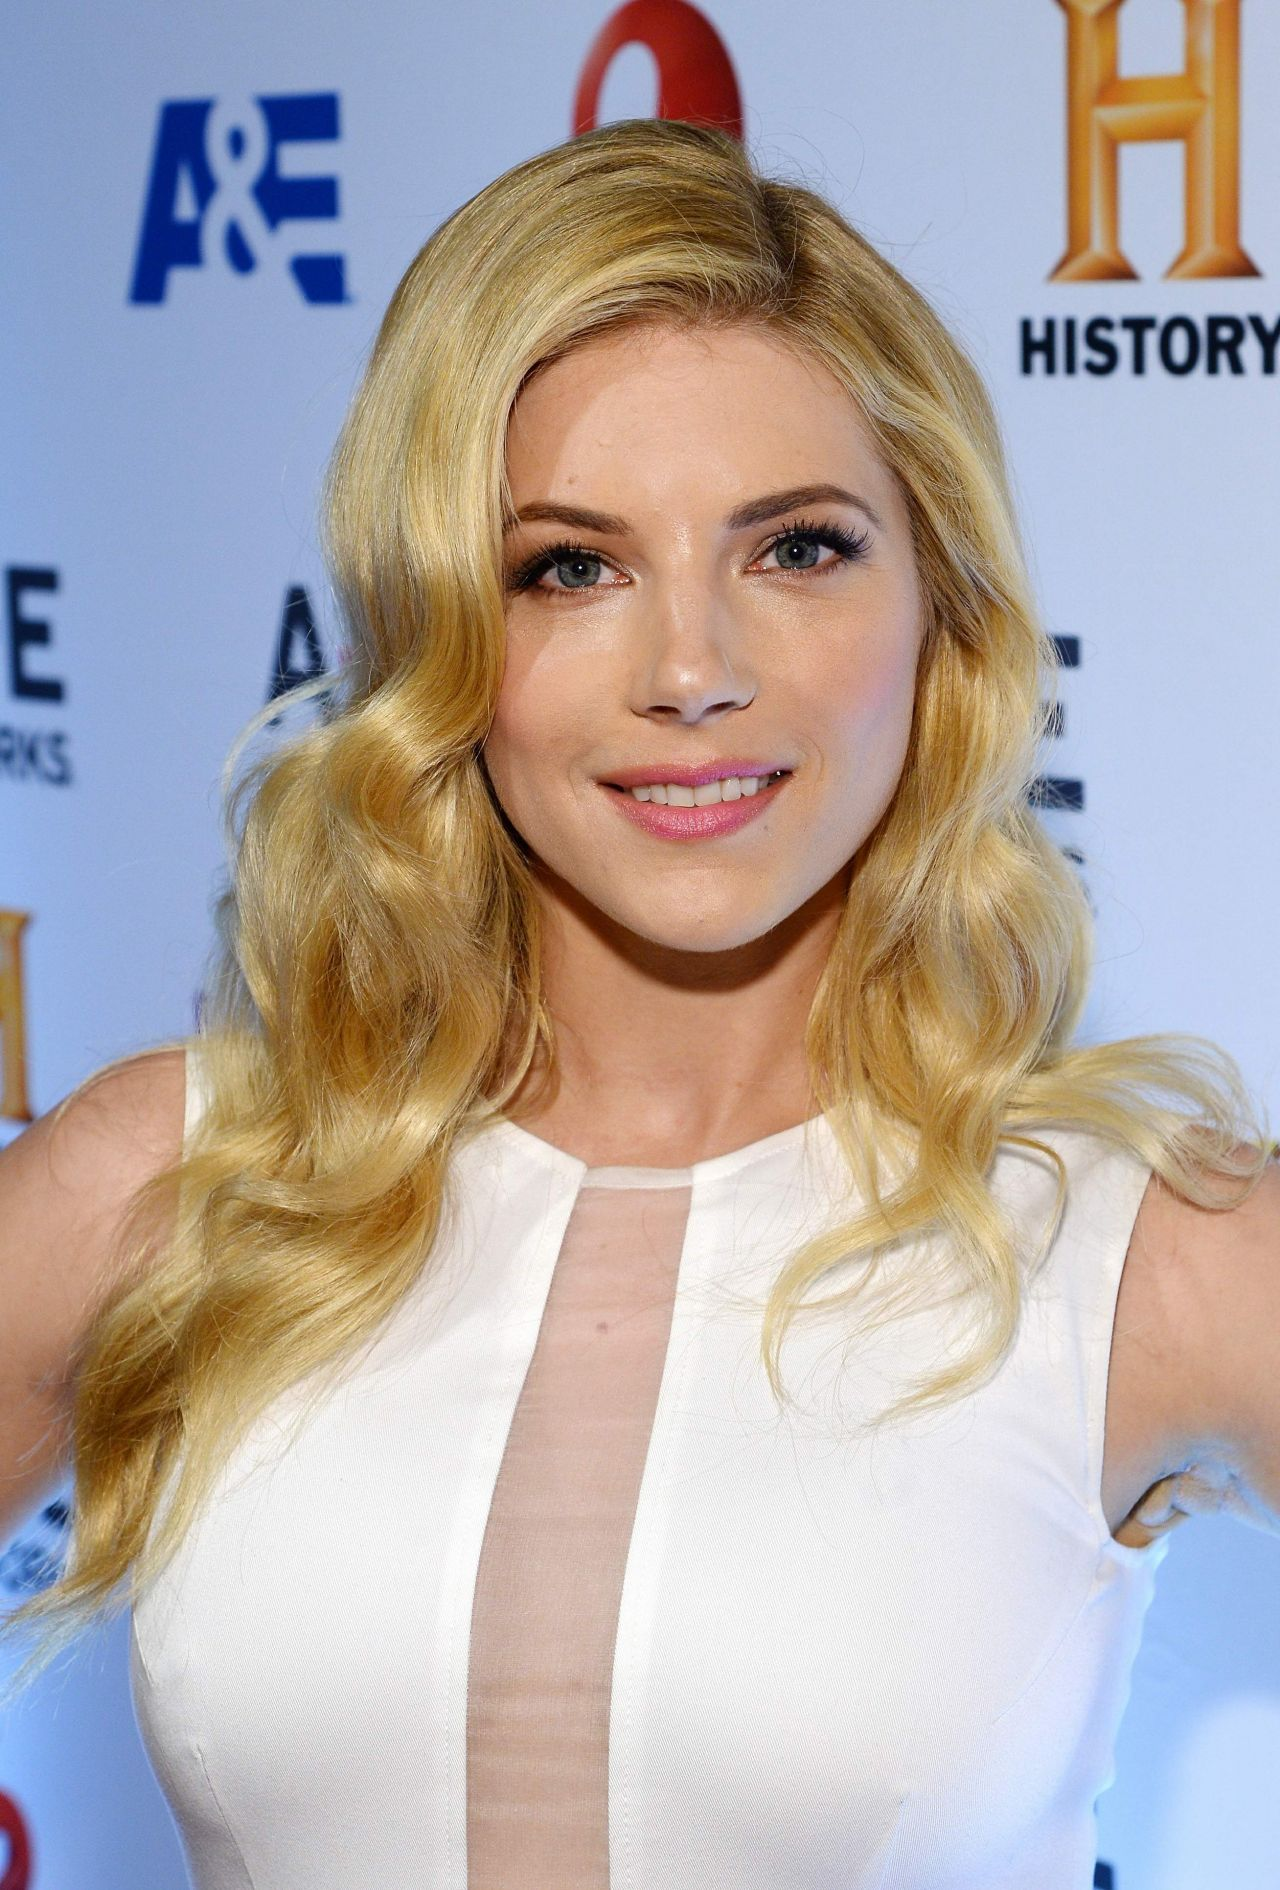 Katheryn Winnick Attends The 2014 Ae Networks Upfront Park